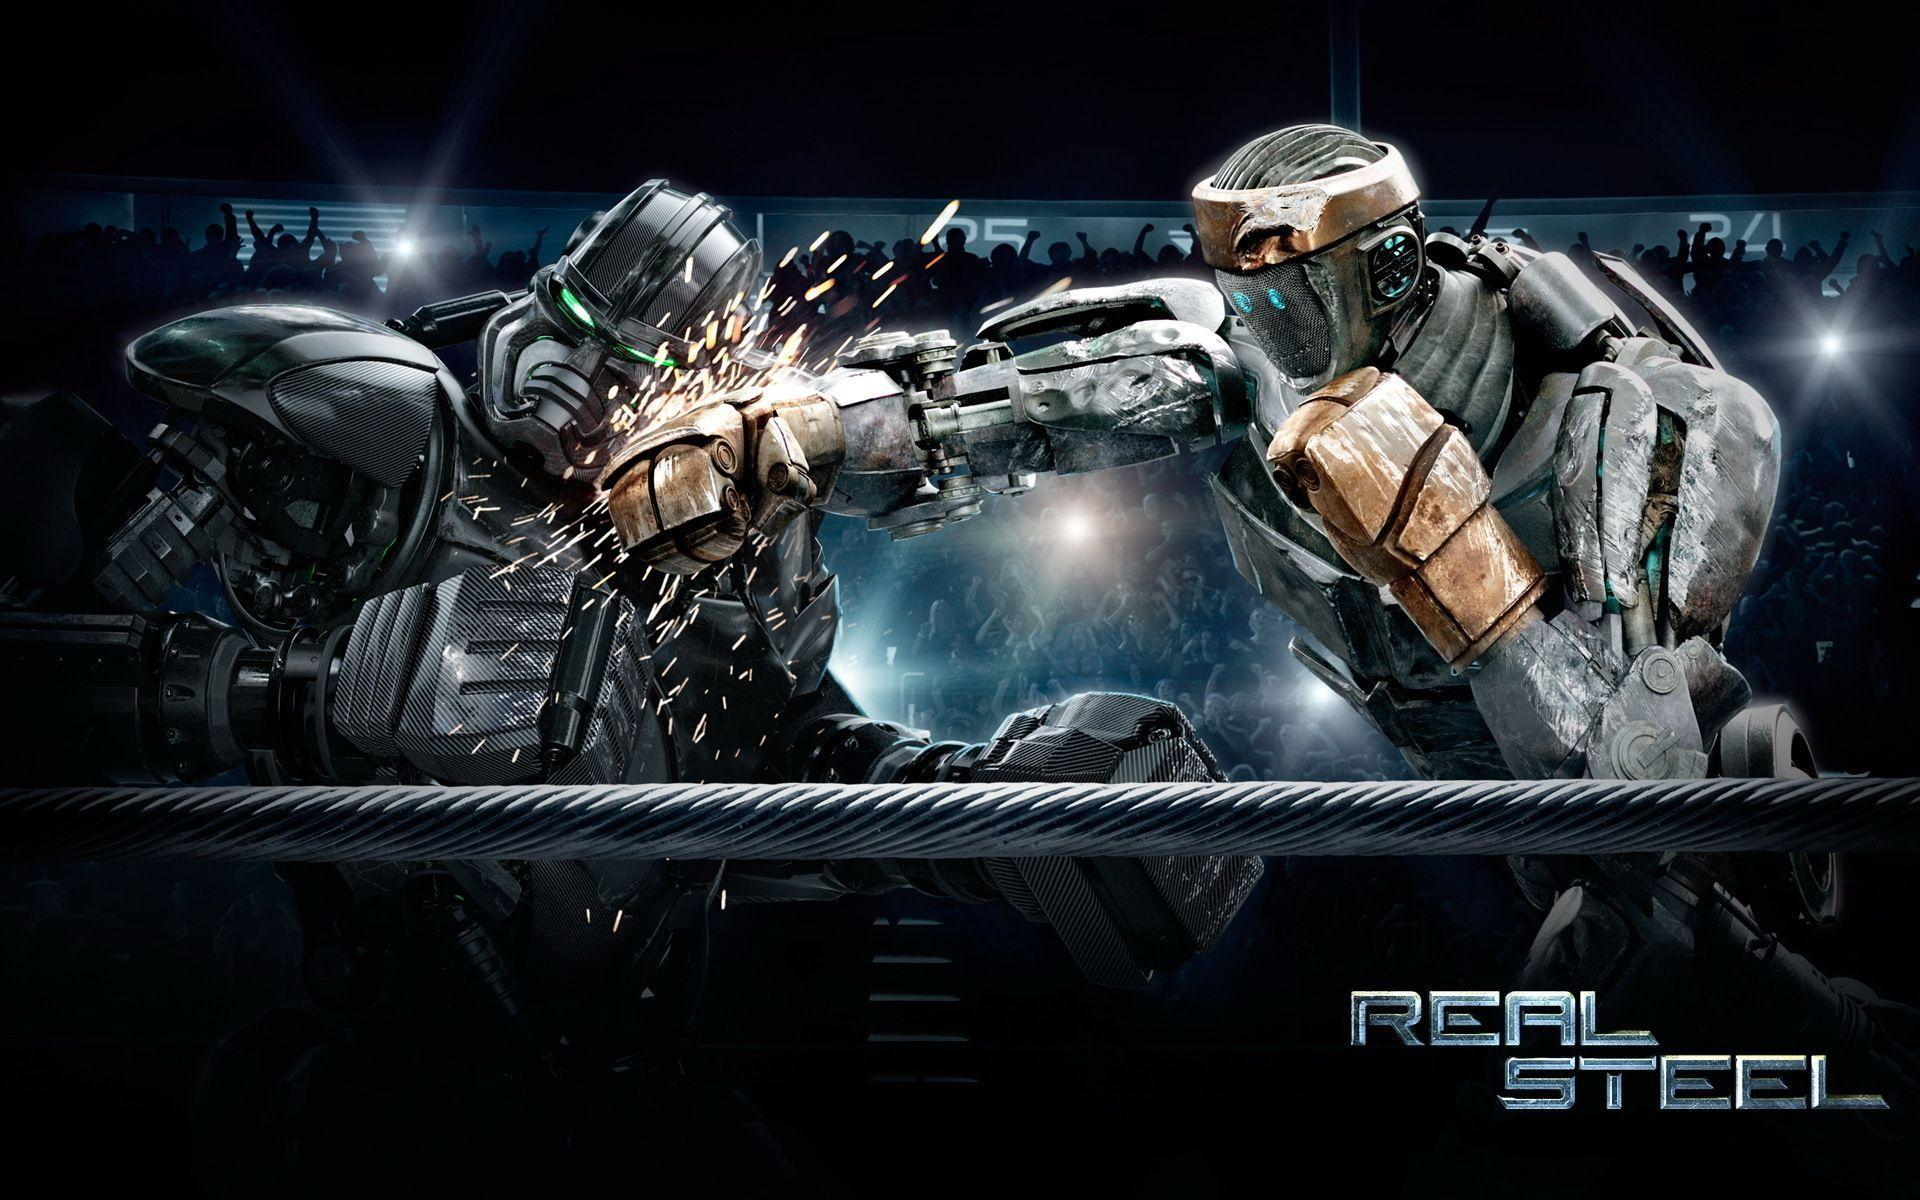 real steel wallpaper  Real Steel Wallpapers - Wallpaper Cave